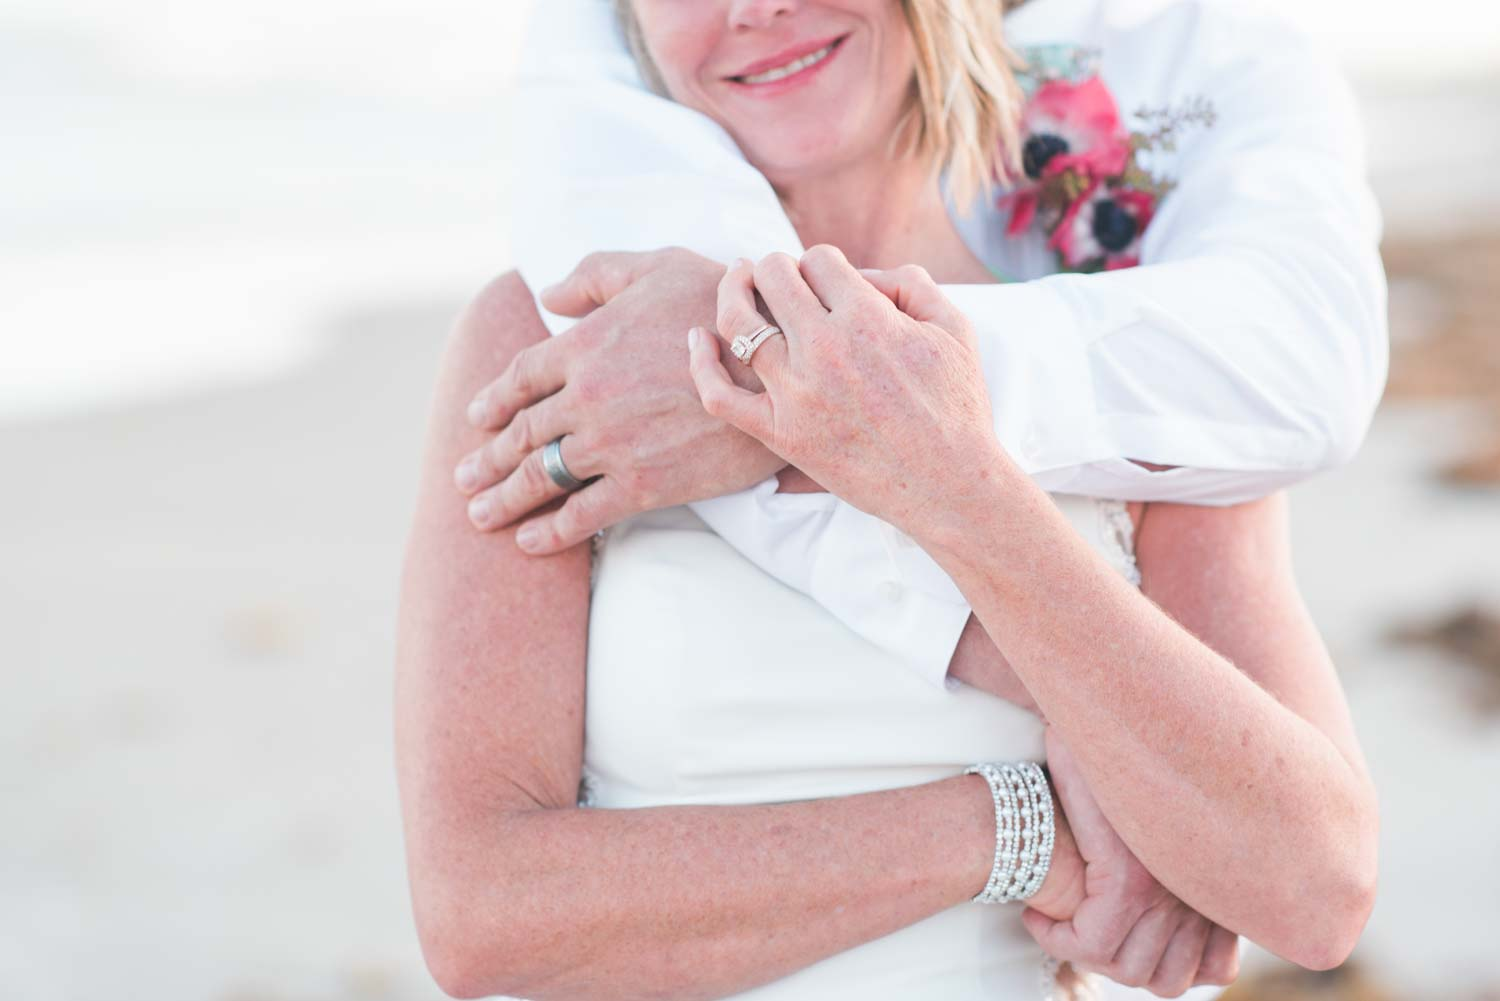 Cape Canaveral Beach Wedding Photographer - Rania Marie Photography-15.jpg